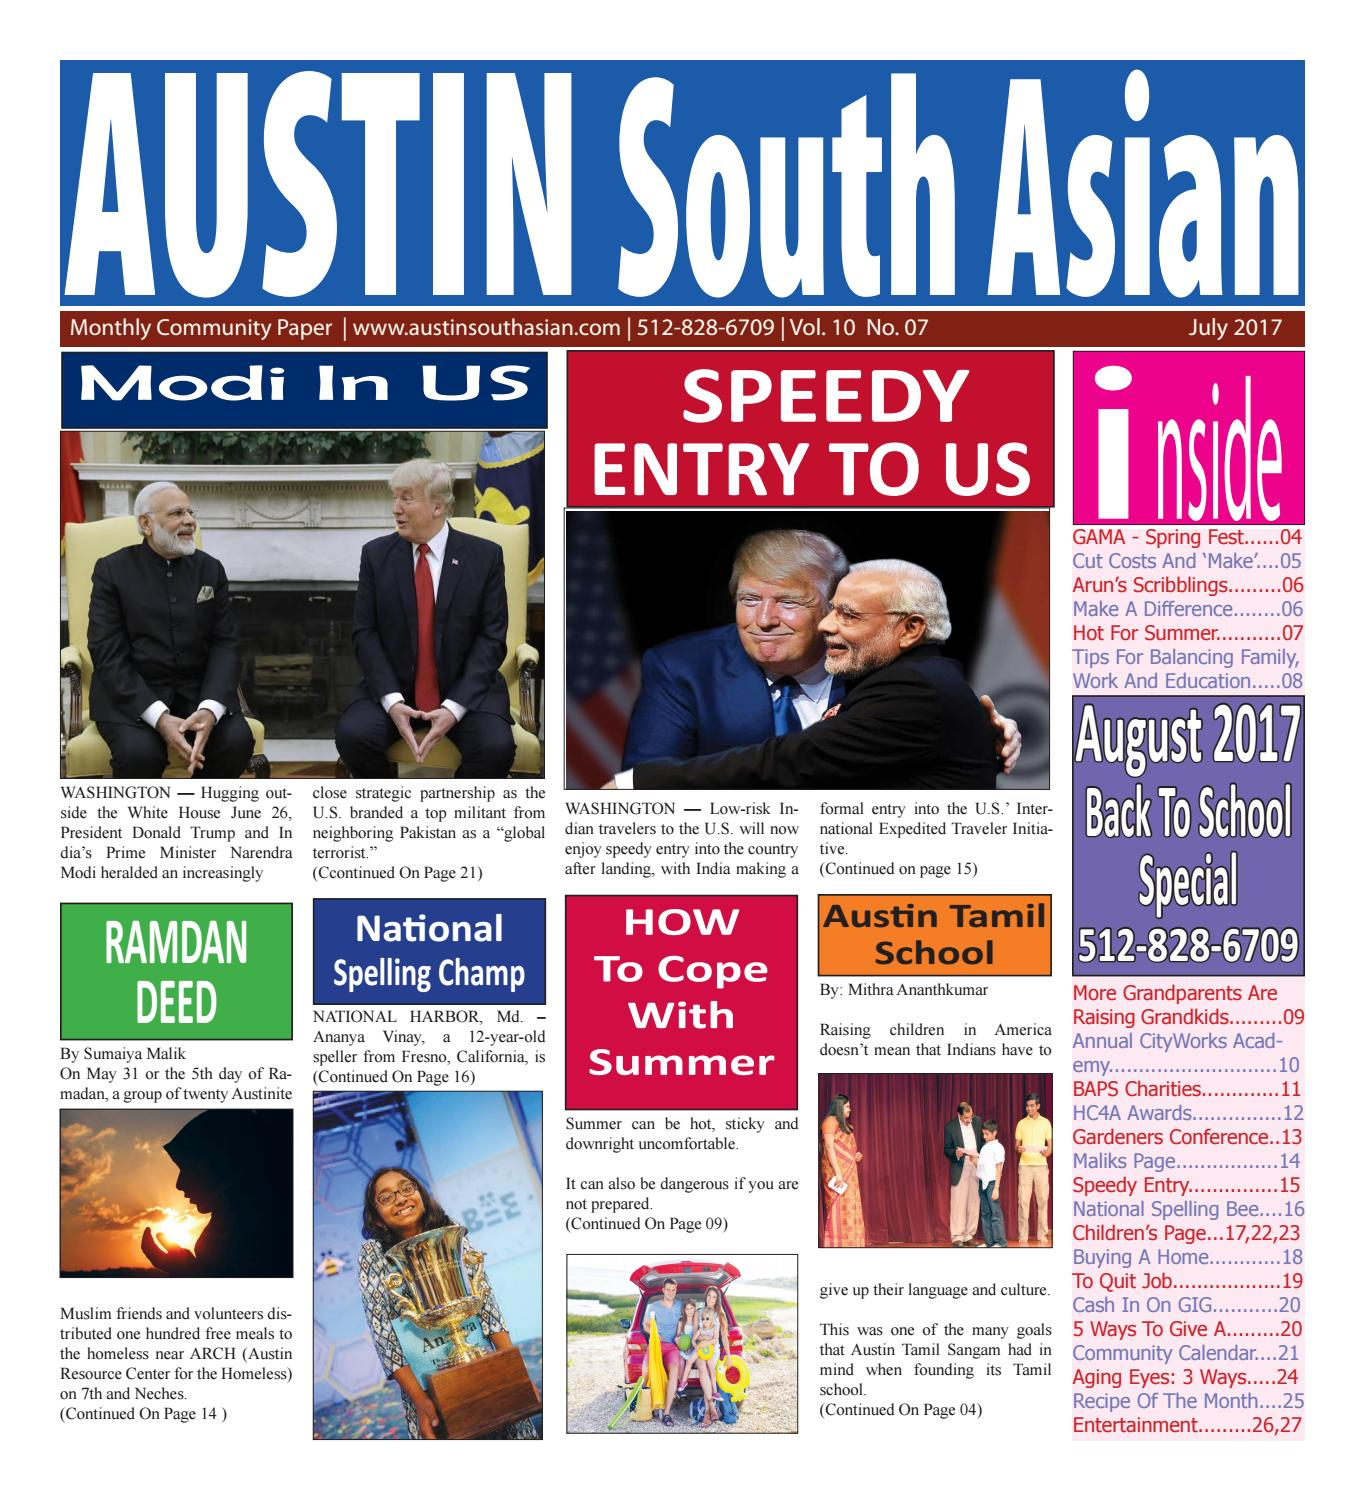 Austin south asian july 17 by Austin South Asian - issuu